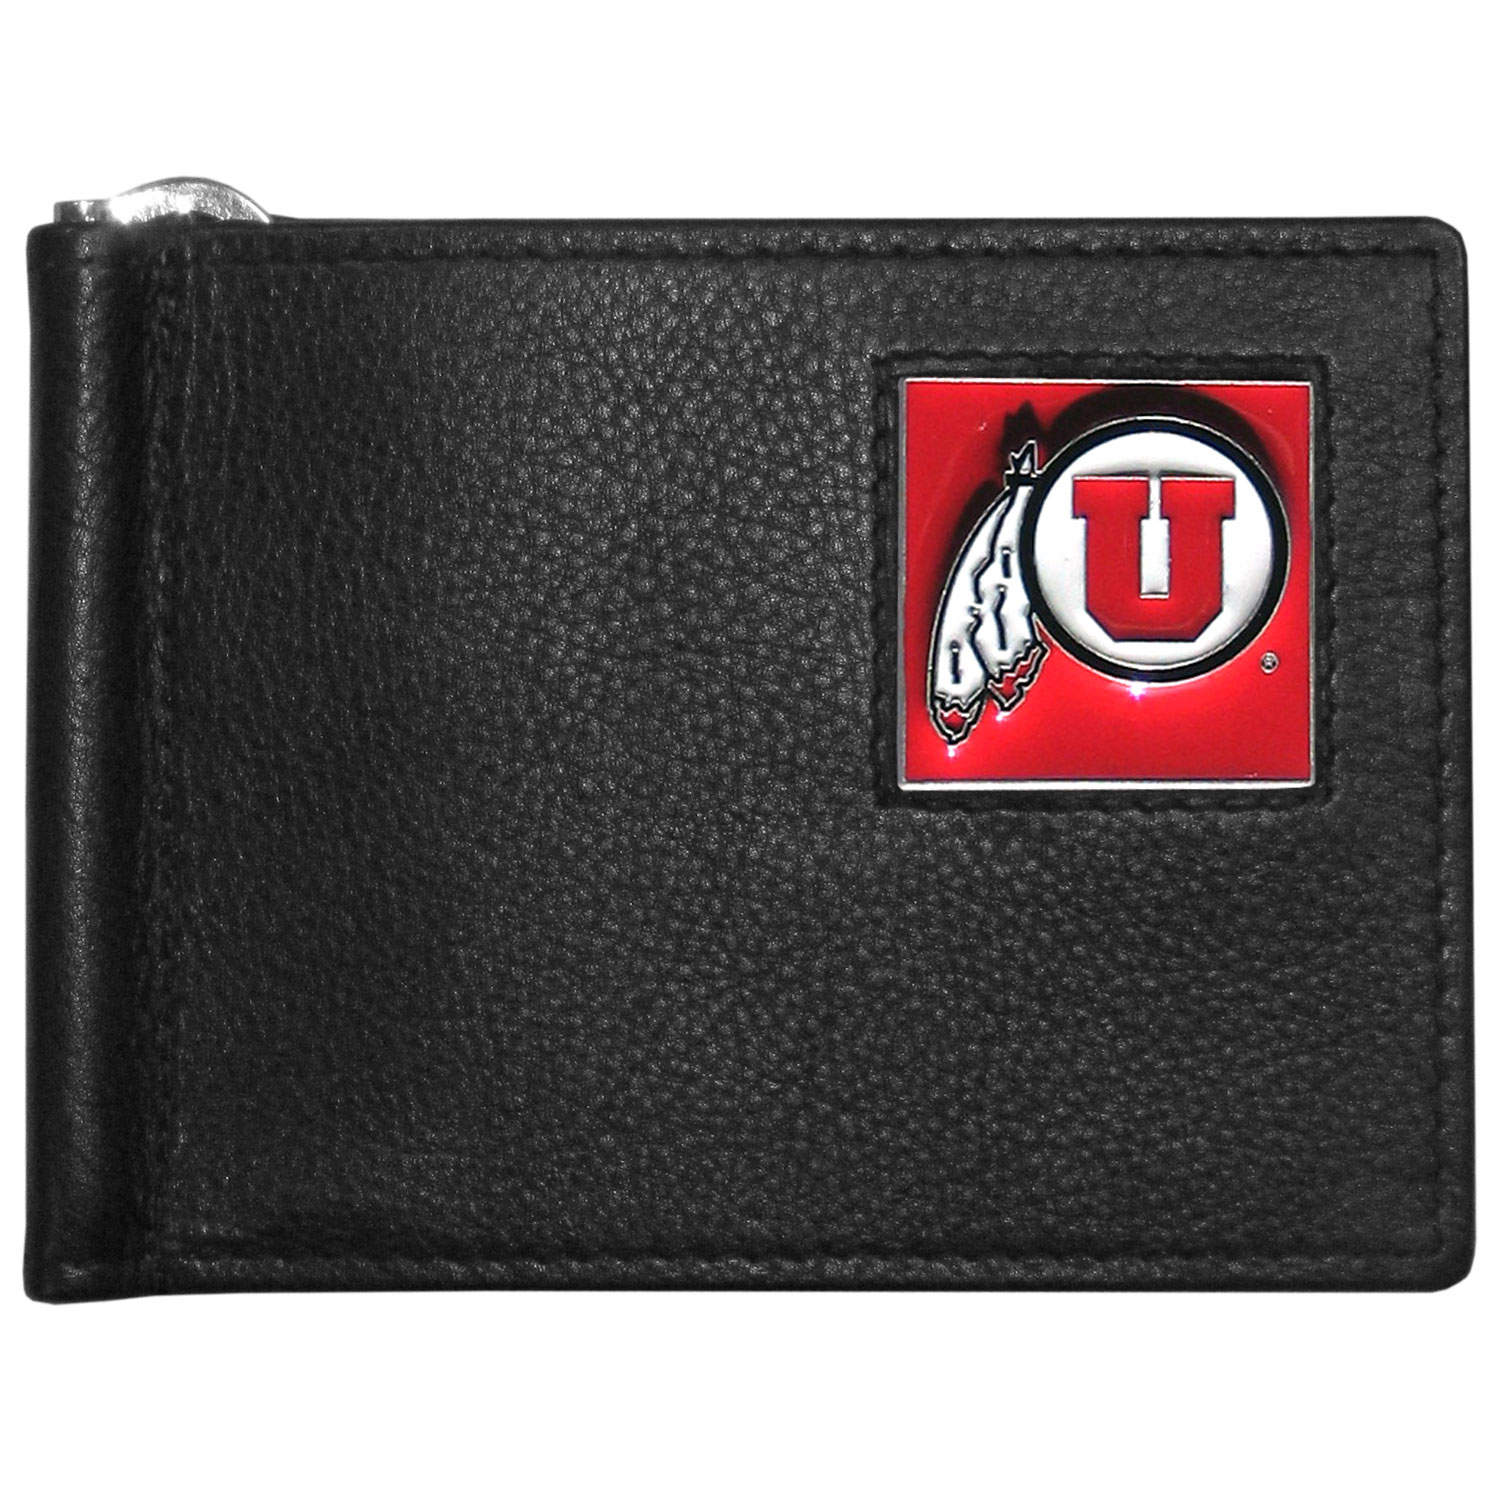 Utah Utes Leather Bill Clip Wallet - This cool new style wallet features an inner, metal bill clip that lips up for easy access. The super slim wallet holds tons of stuff with ample pockets, credit card slots & windowed ID slot.  The wallet is made of genuine fine grain leather and it finished with a metal Utah Utes emblem. The wallet is shipped in gift box packaging.